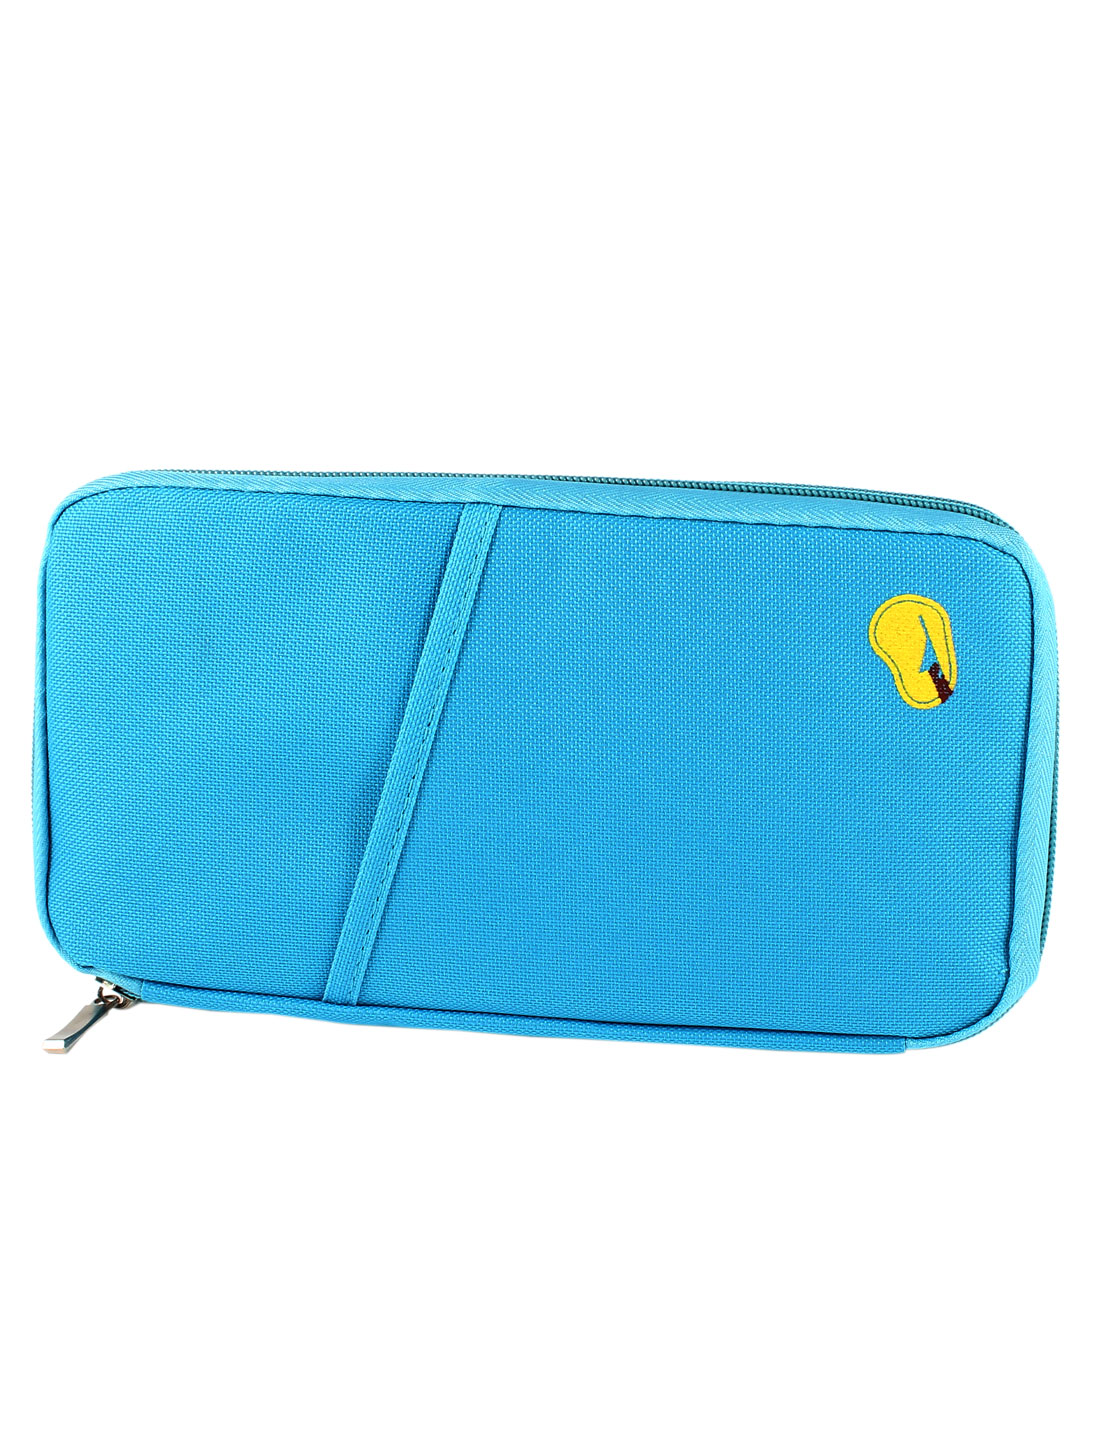 Lady Blue Nylon 12 Compartments Lining Zipper Closure Keyring Purse Bag